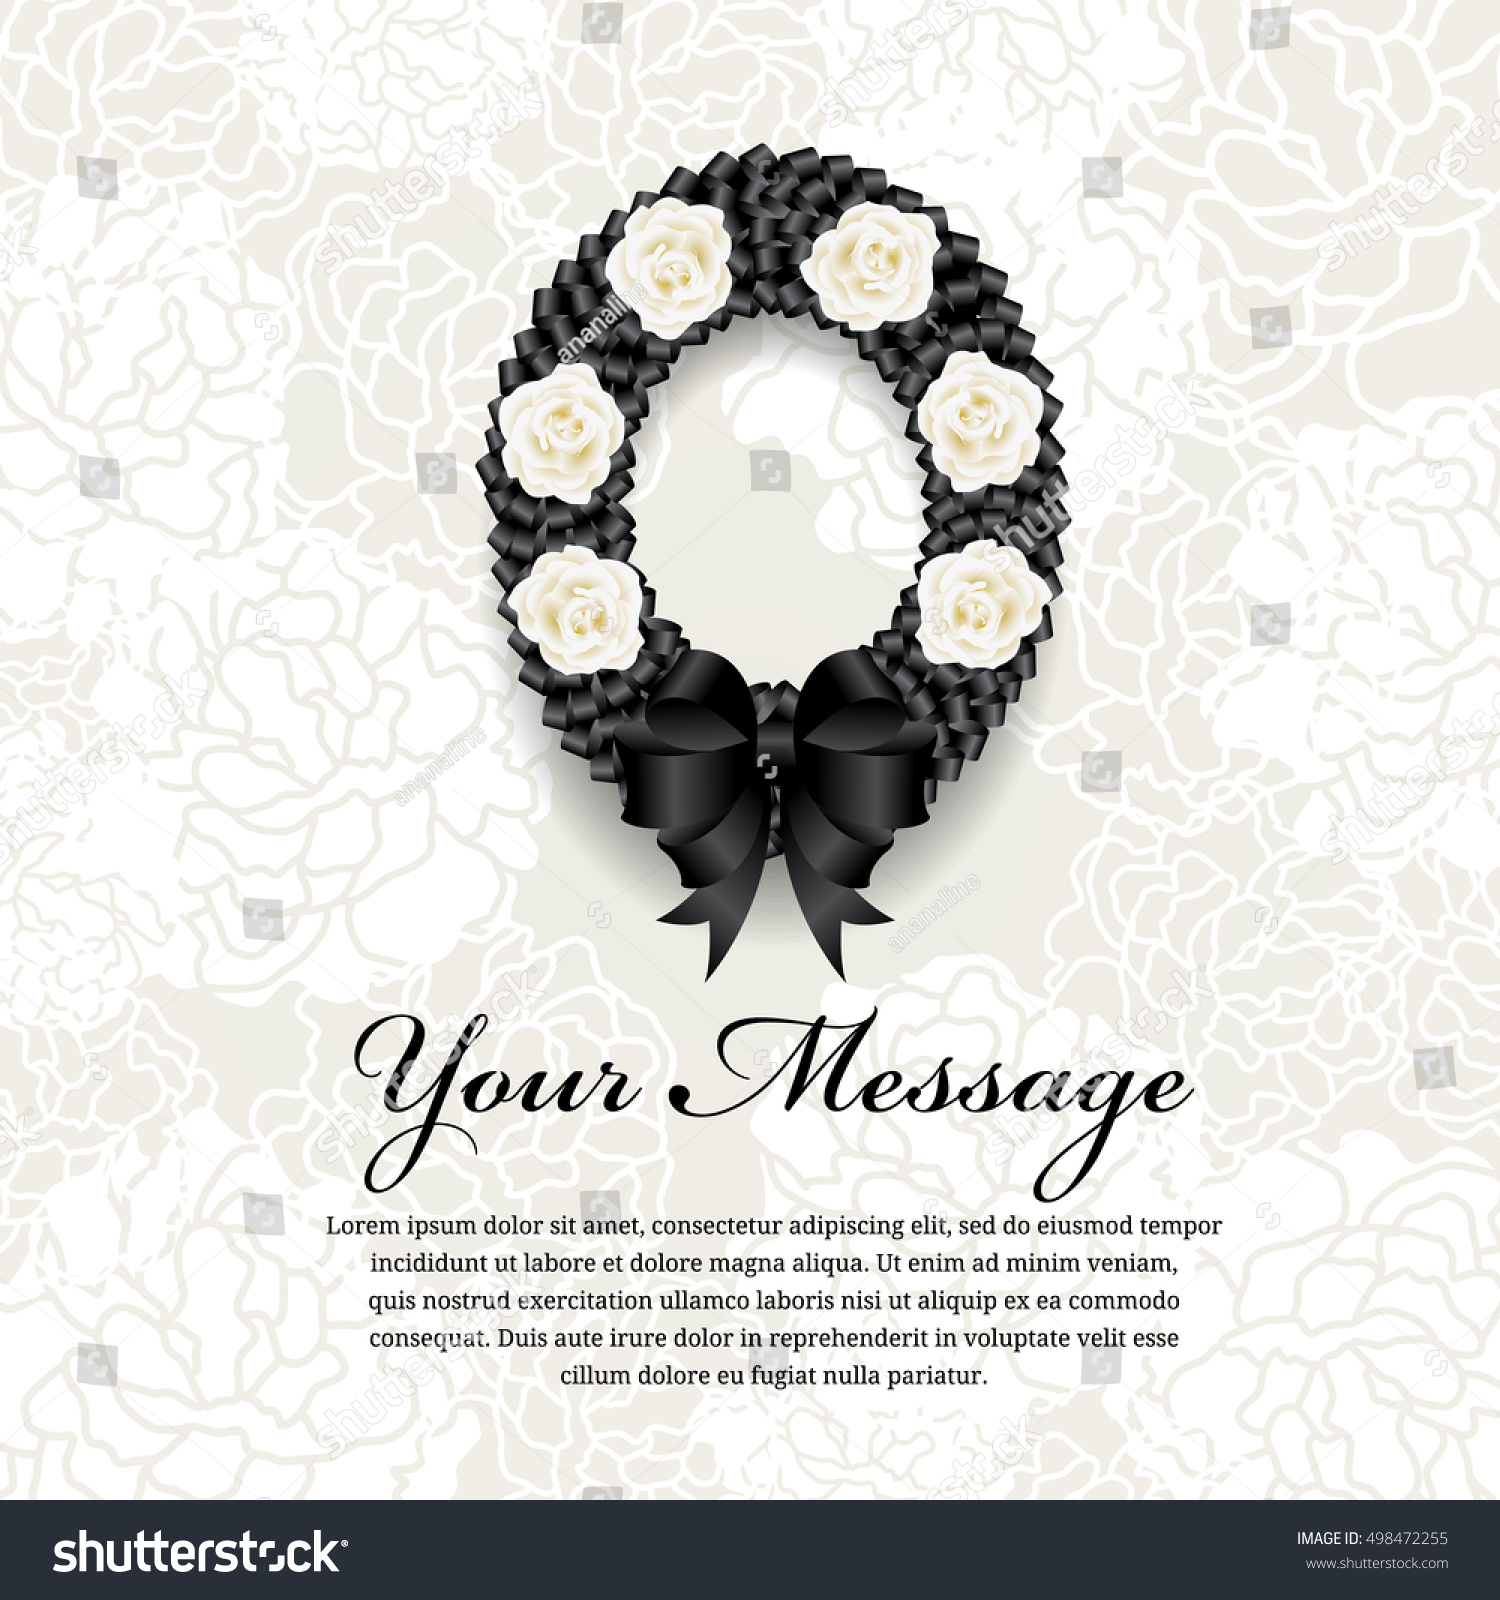 Funeral card circle black ribbon wreath stock vector royalty free funeral card circle black ribbon wreath bow and white rose on soft flower abstract background izmirmasajfo